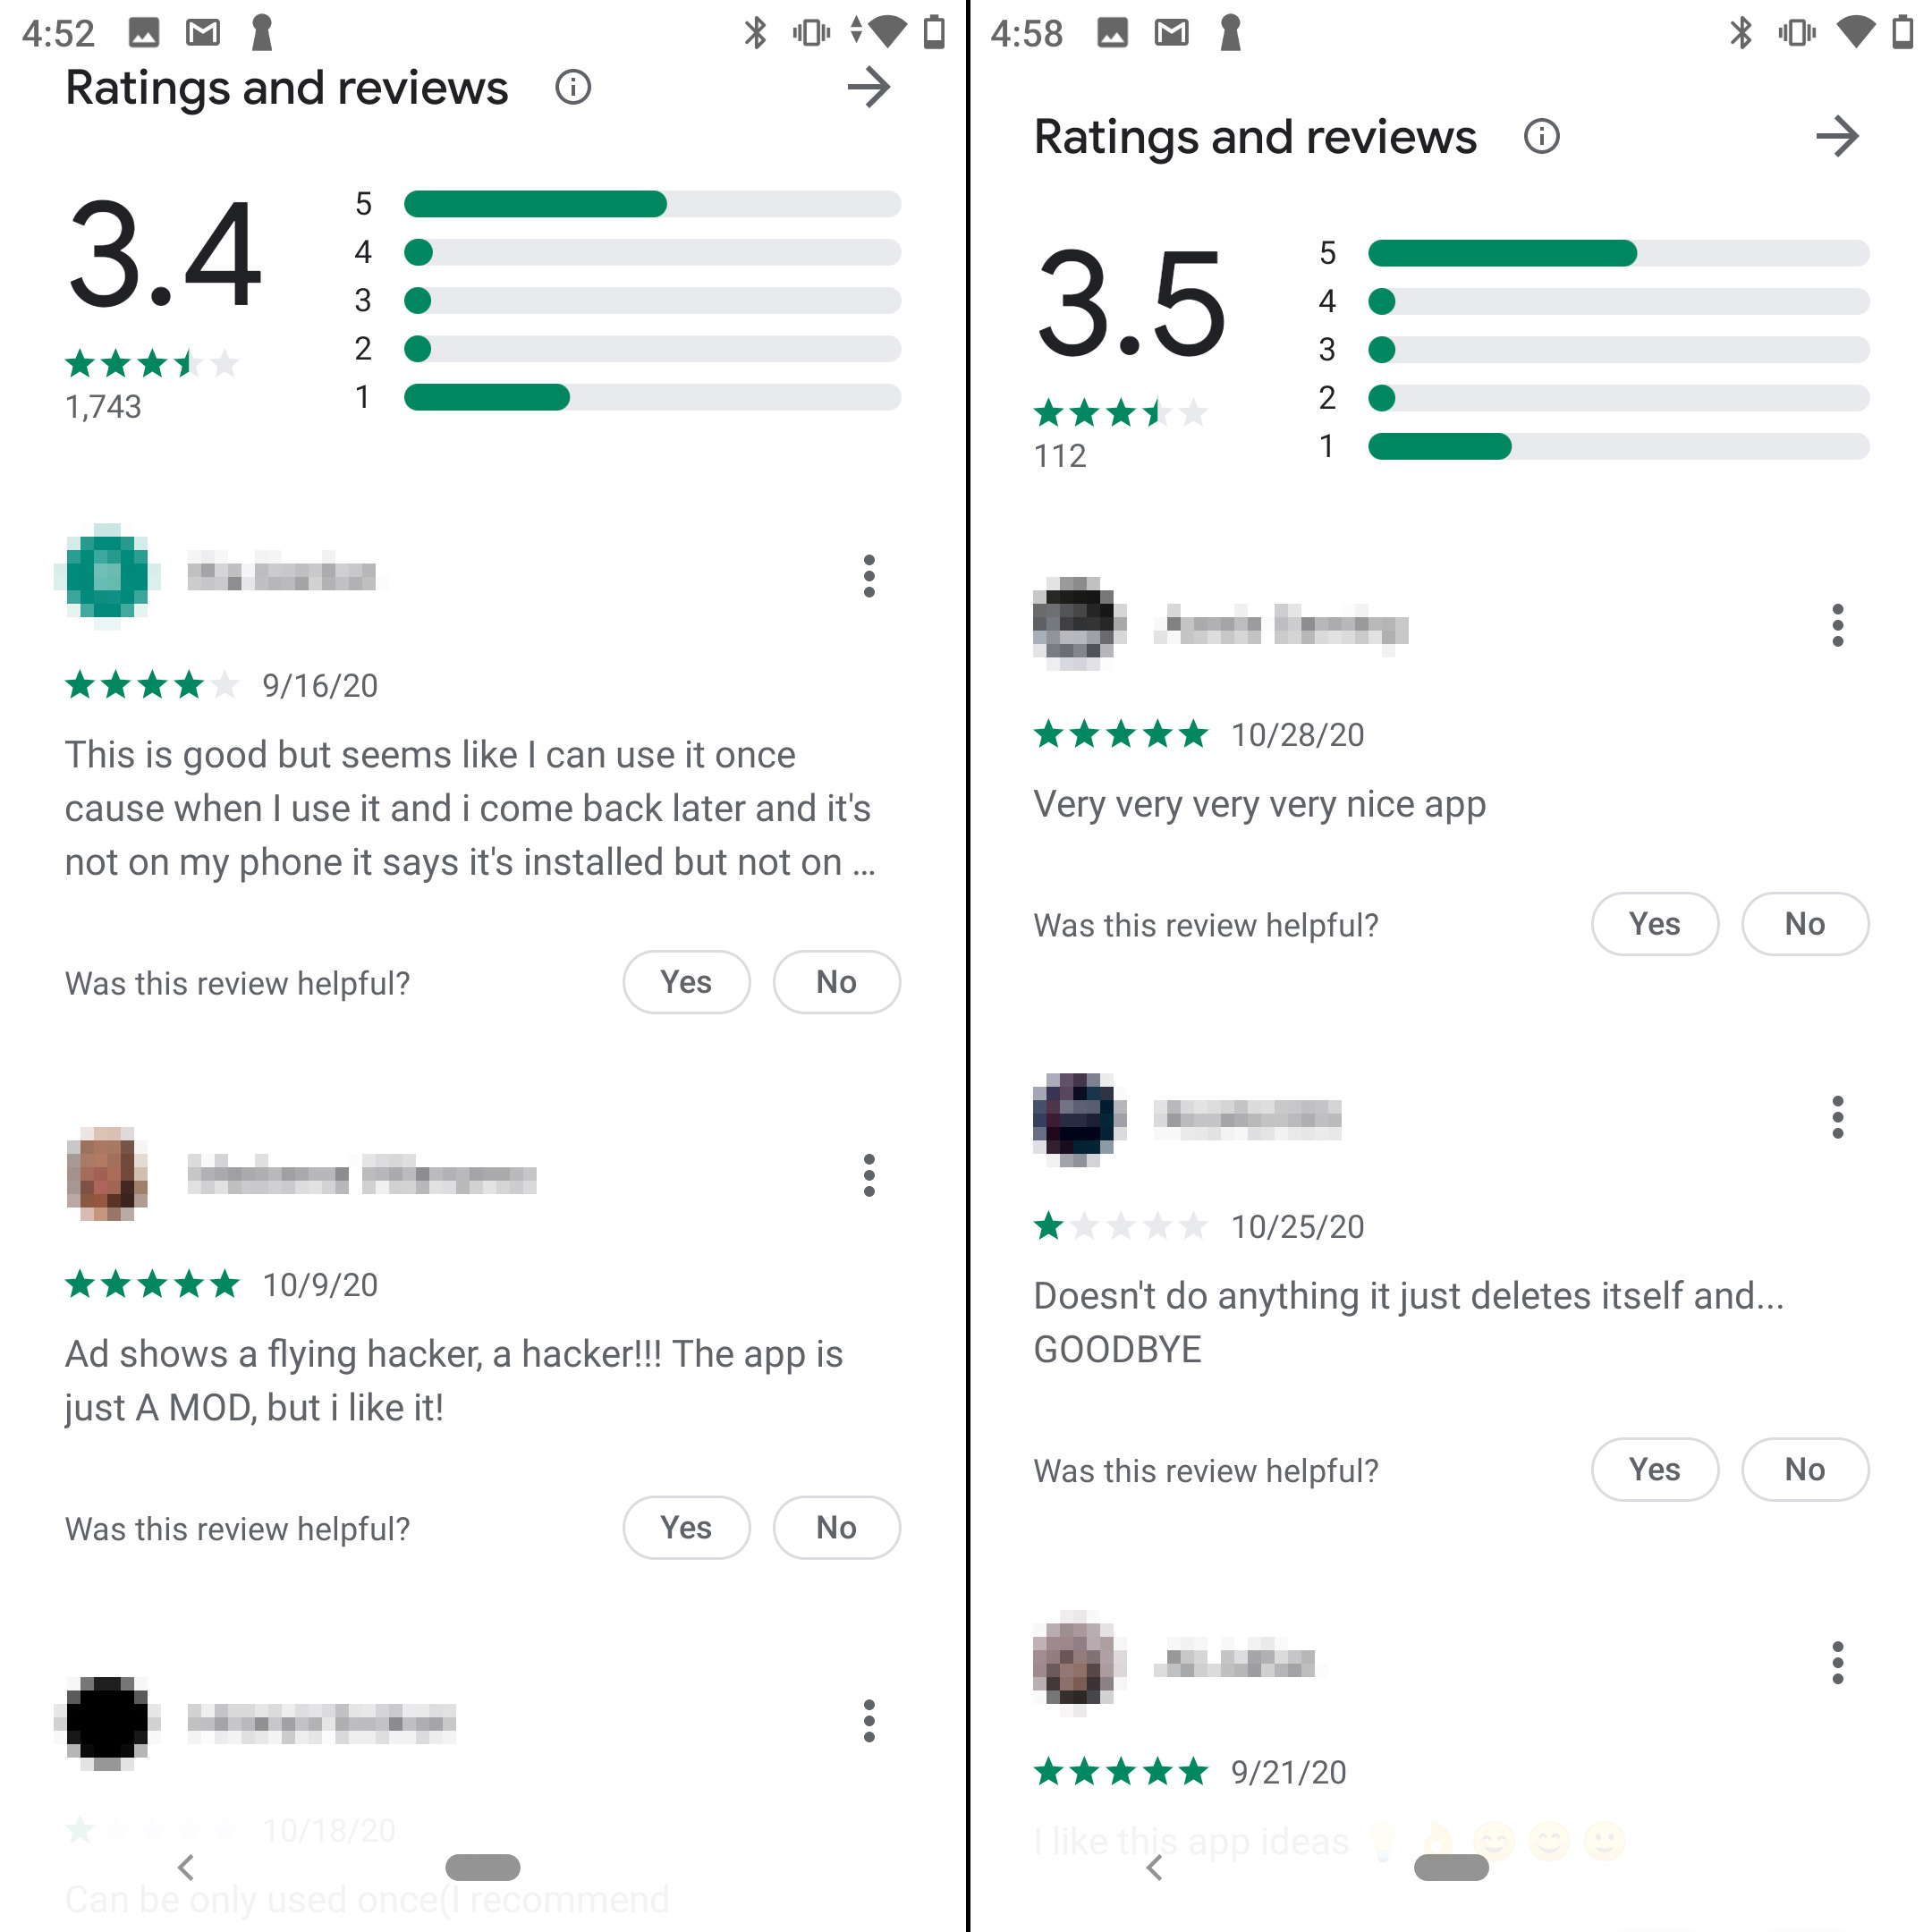 The apps receive either five stars or one. Suspicious!